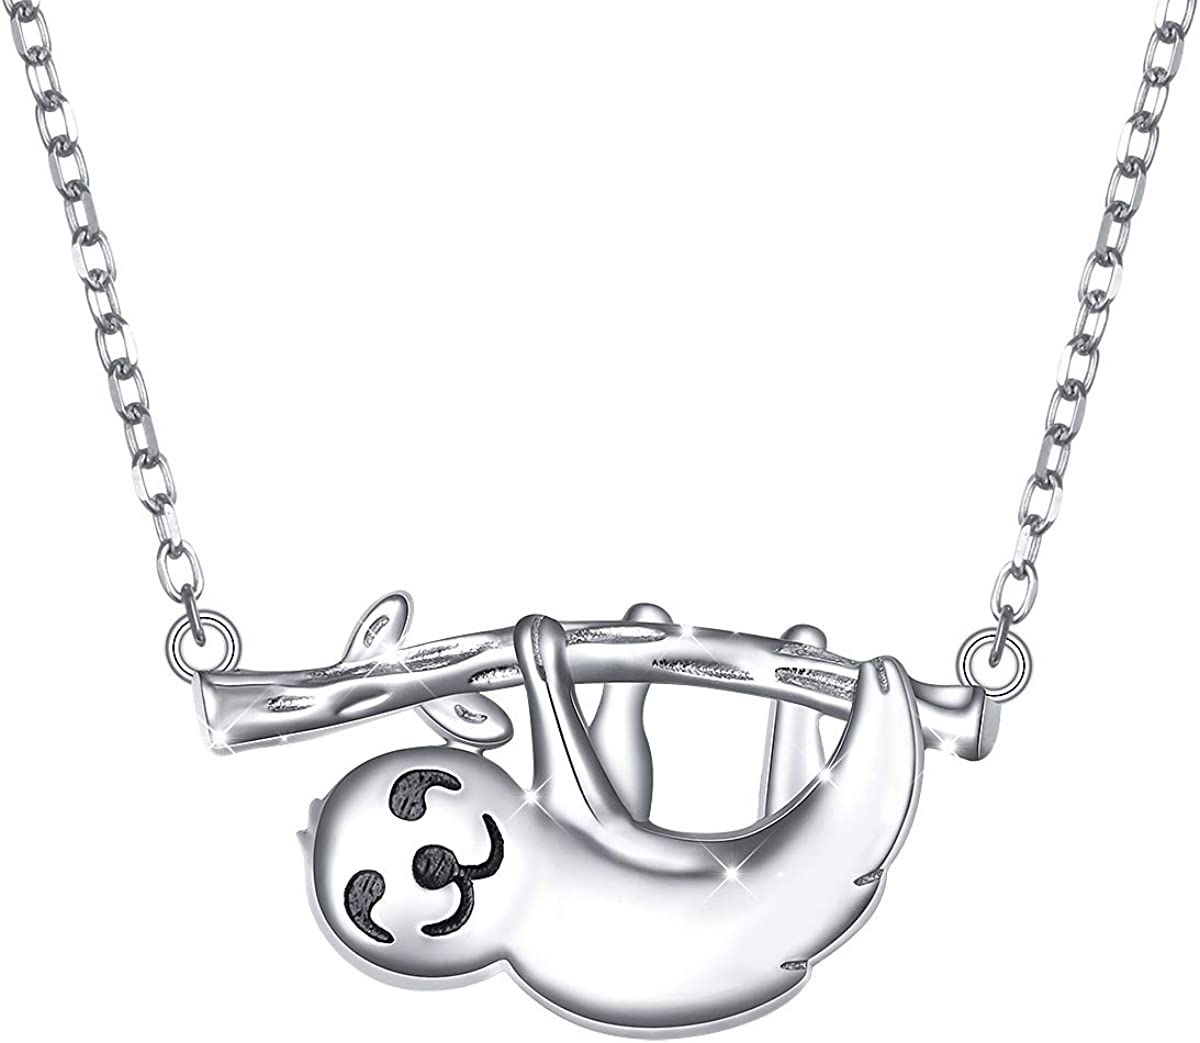 FLYOW 925 Sterling Silver What's The Rush Cute Animal Sloth Pendant Necklace Birthday Gift for Women Teen Girls,16+2 inch